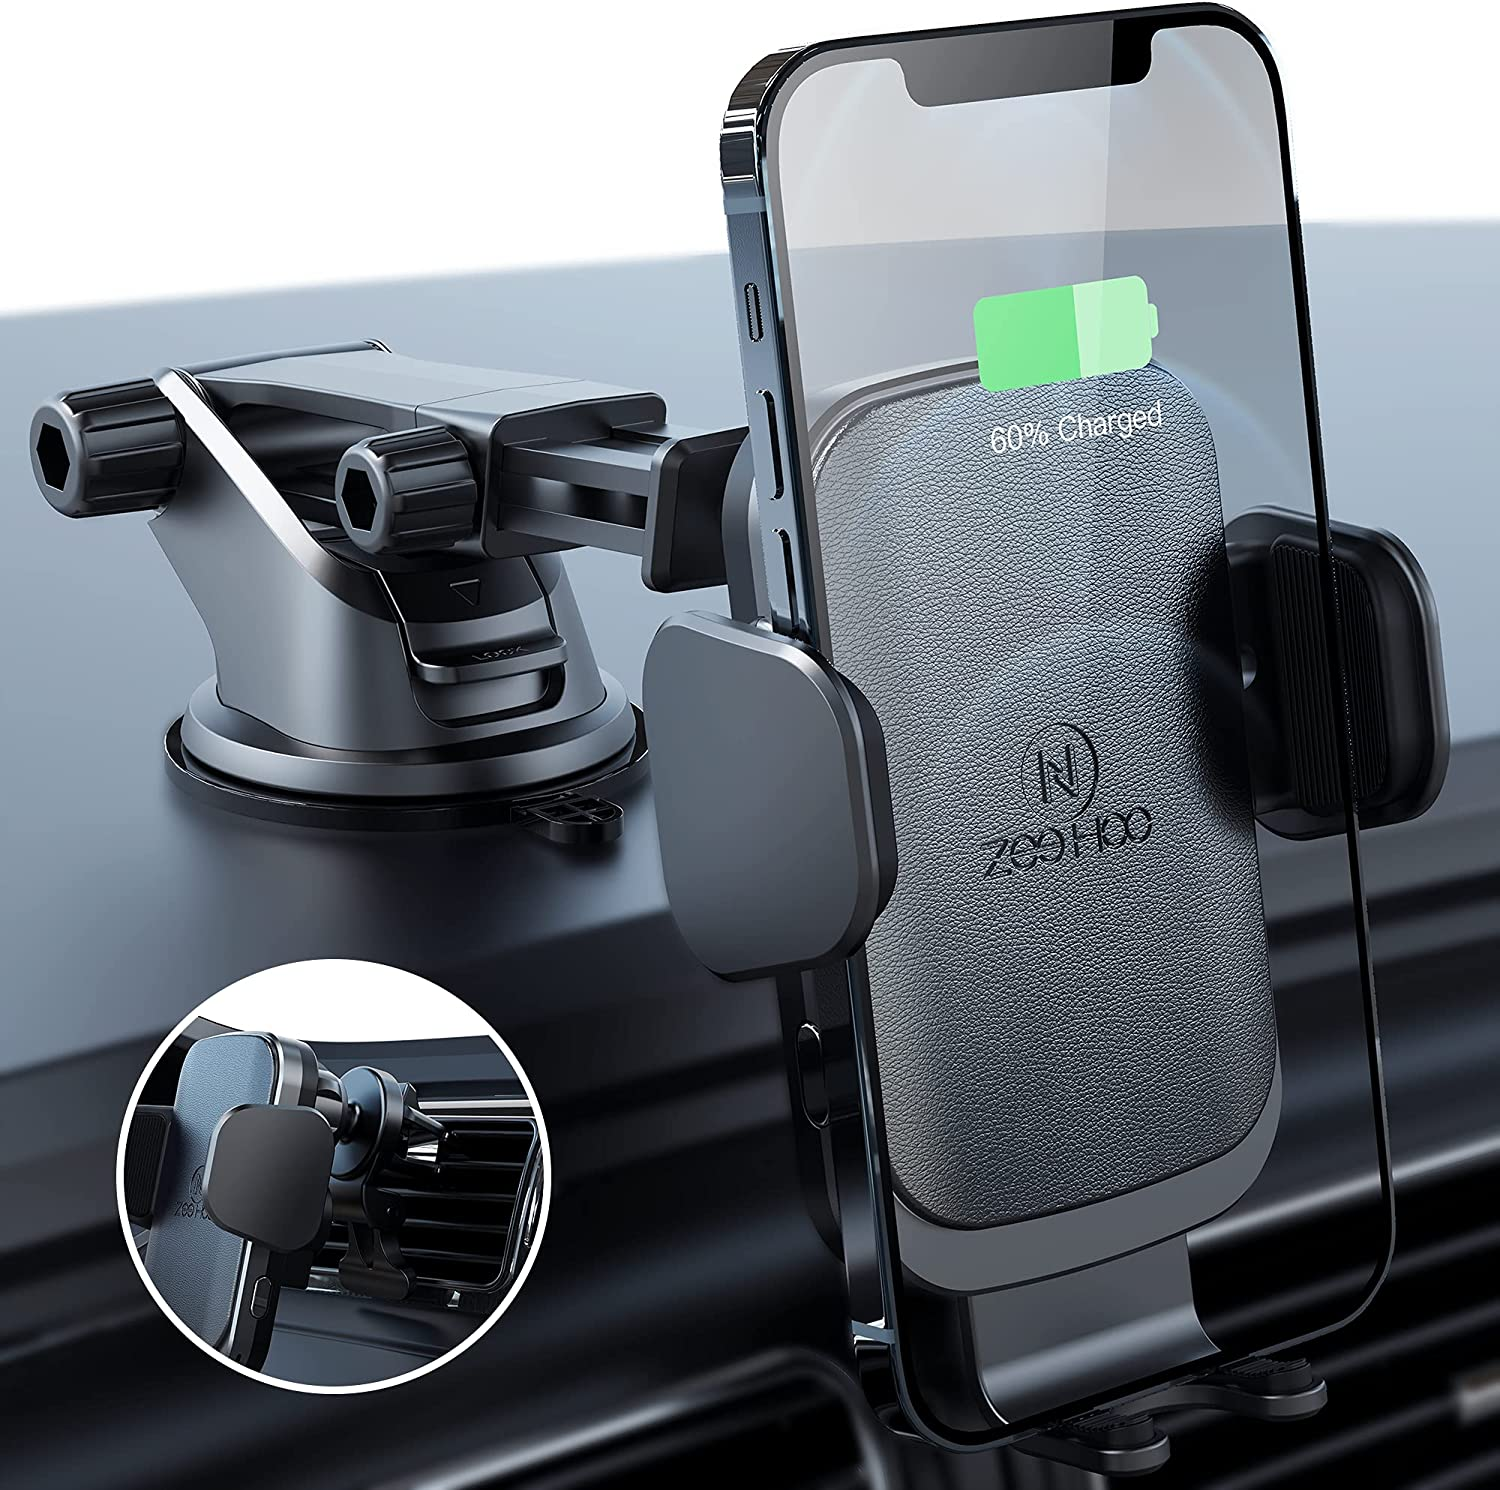 ZeeHoo Wireless Car Charger,10W Qi Fast Charging Auto-Clamping Car Mount